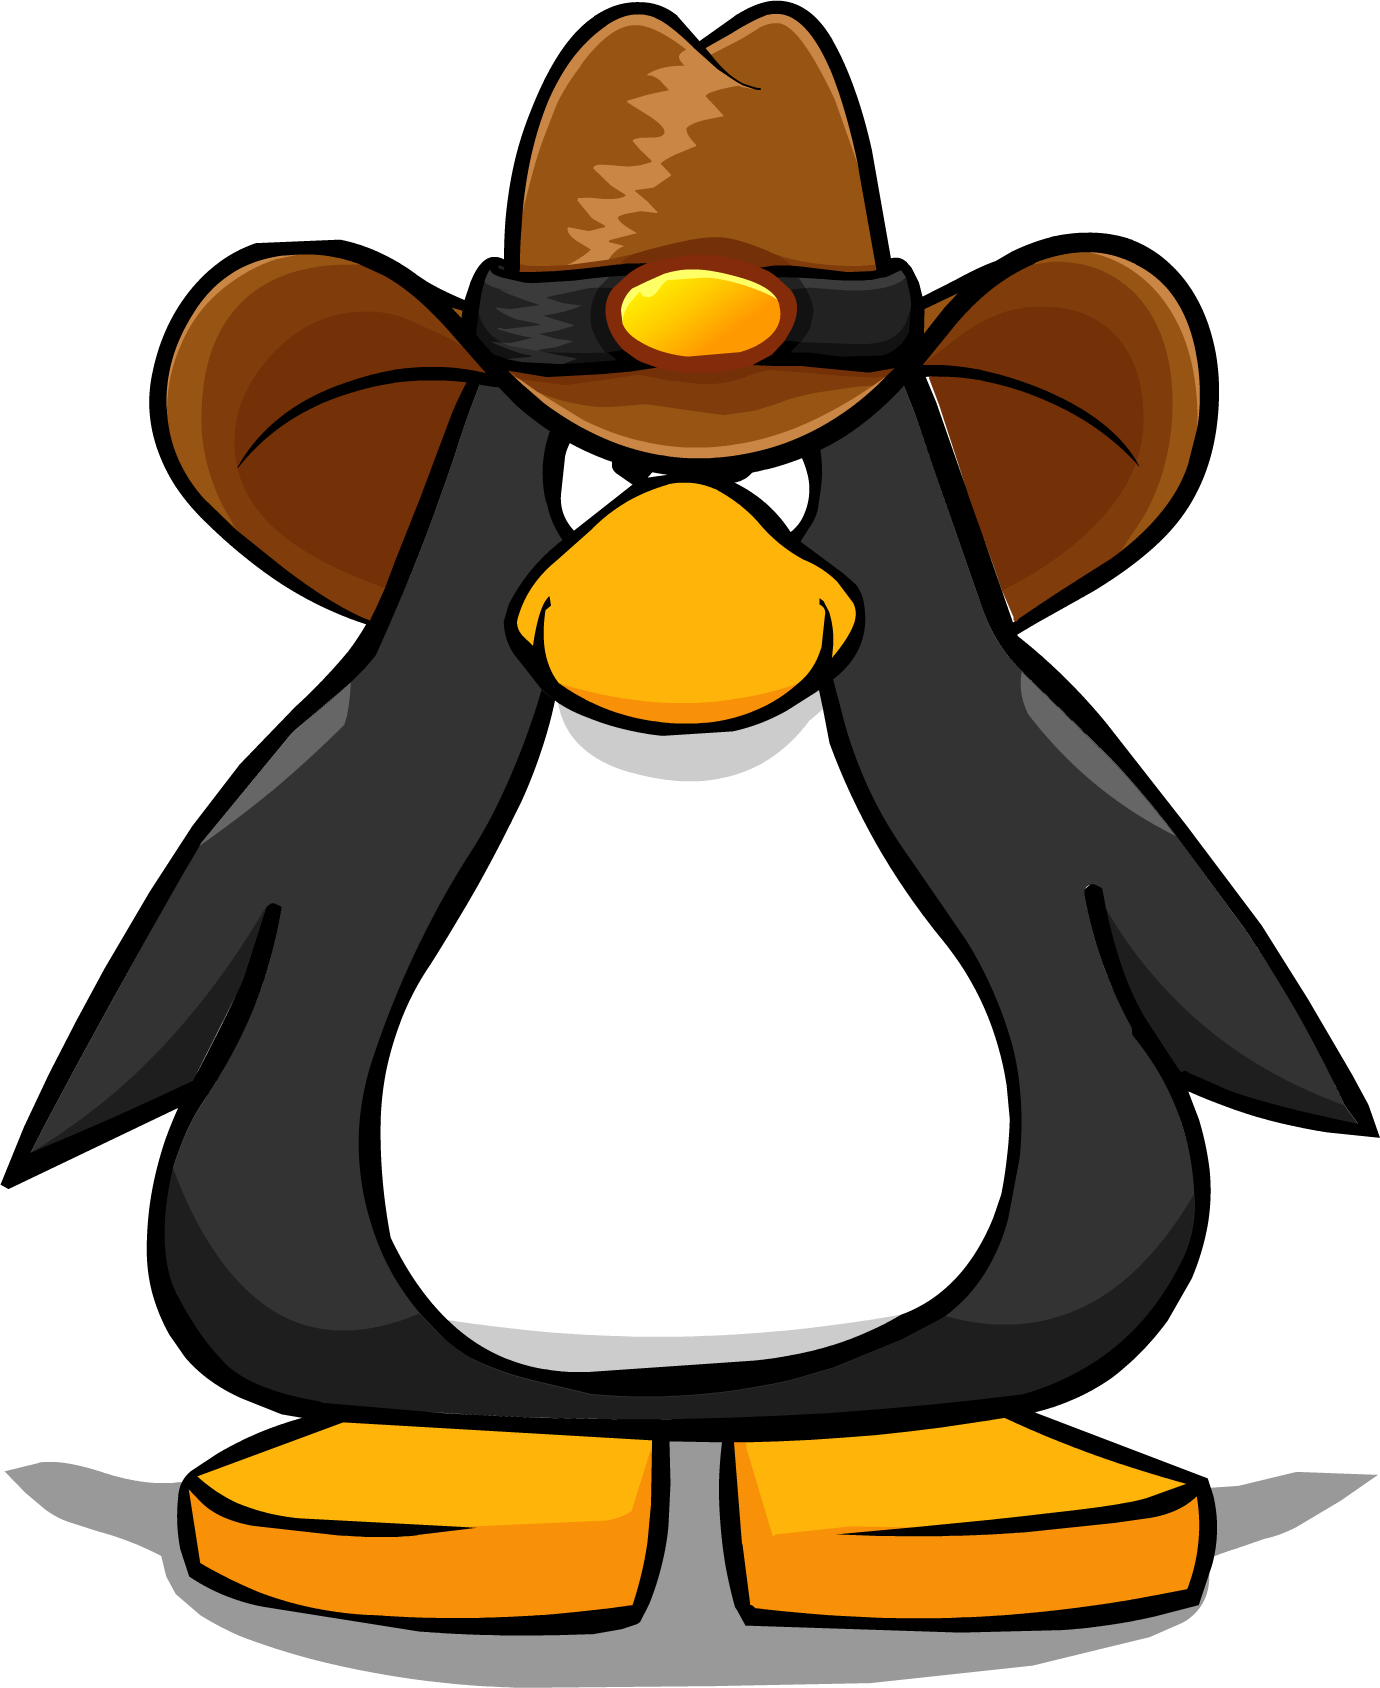 Clipart penguin brown. Image cowboy hat from